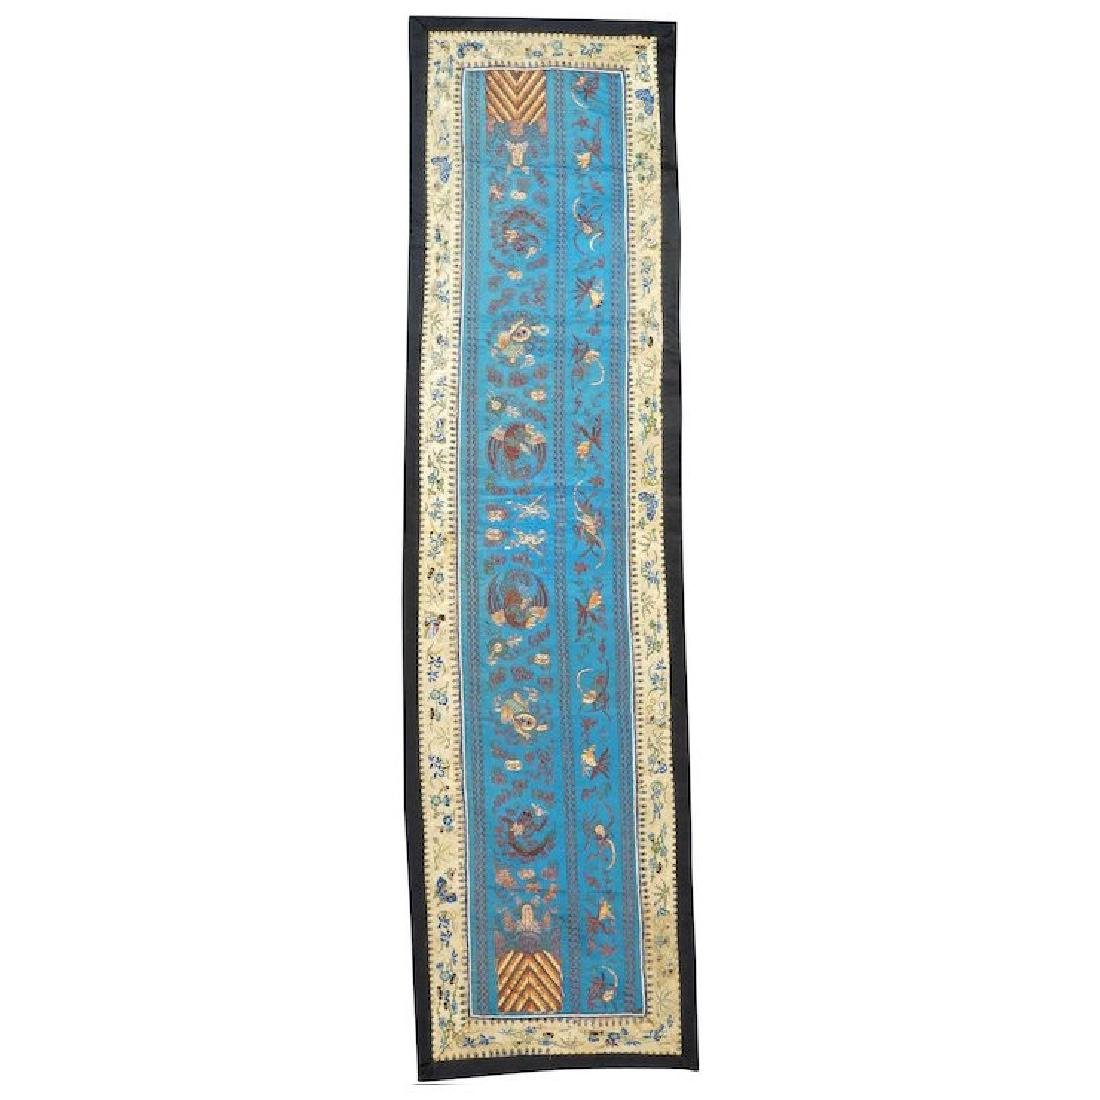 Chinese silk embroidery panel with gold threads with